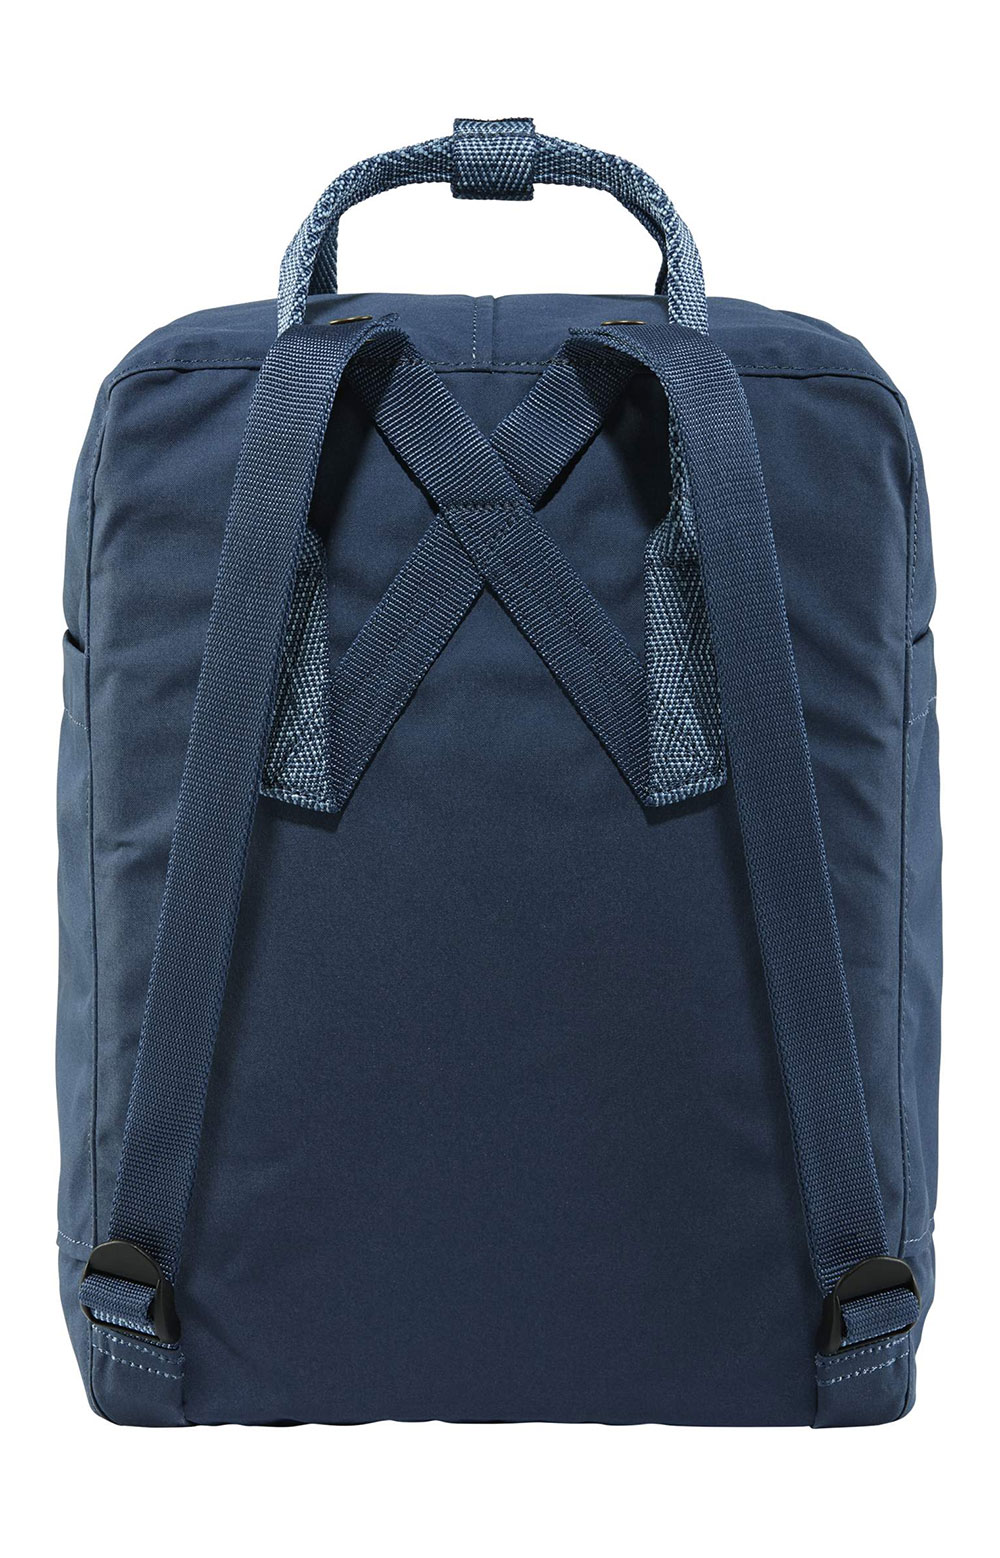 Kanken Backpack - Royal Blue/Goose Eye 2